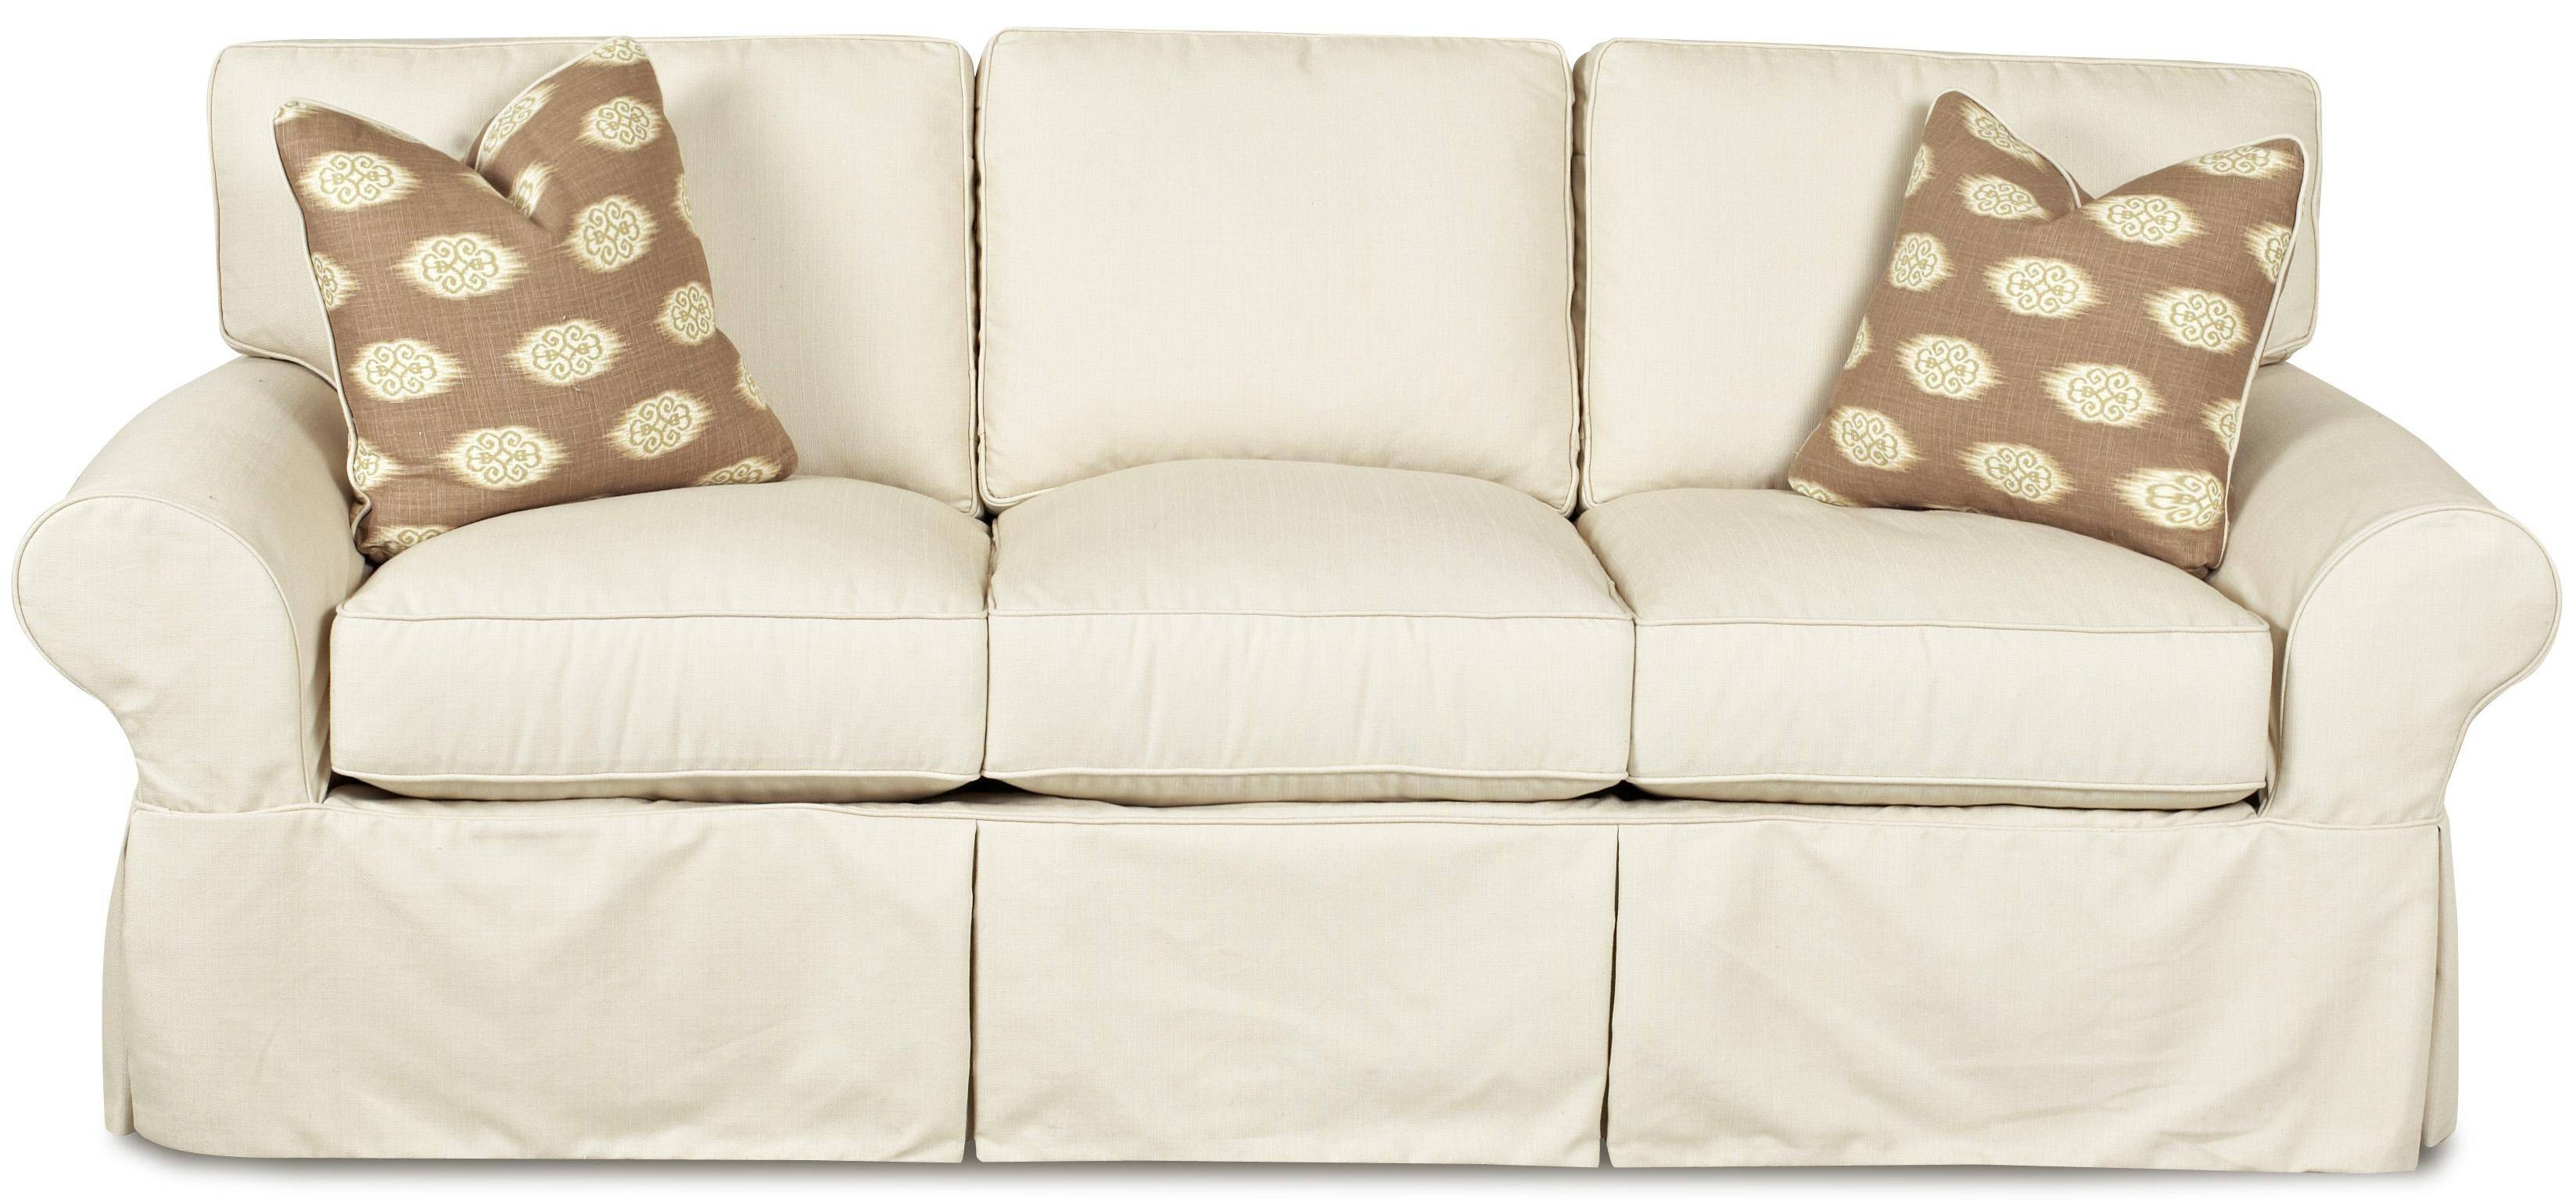 2017 Popular Clearance Sofa Covers